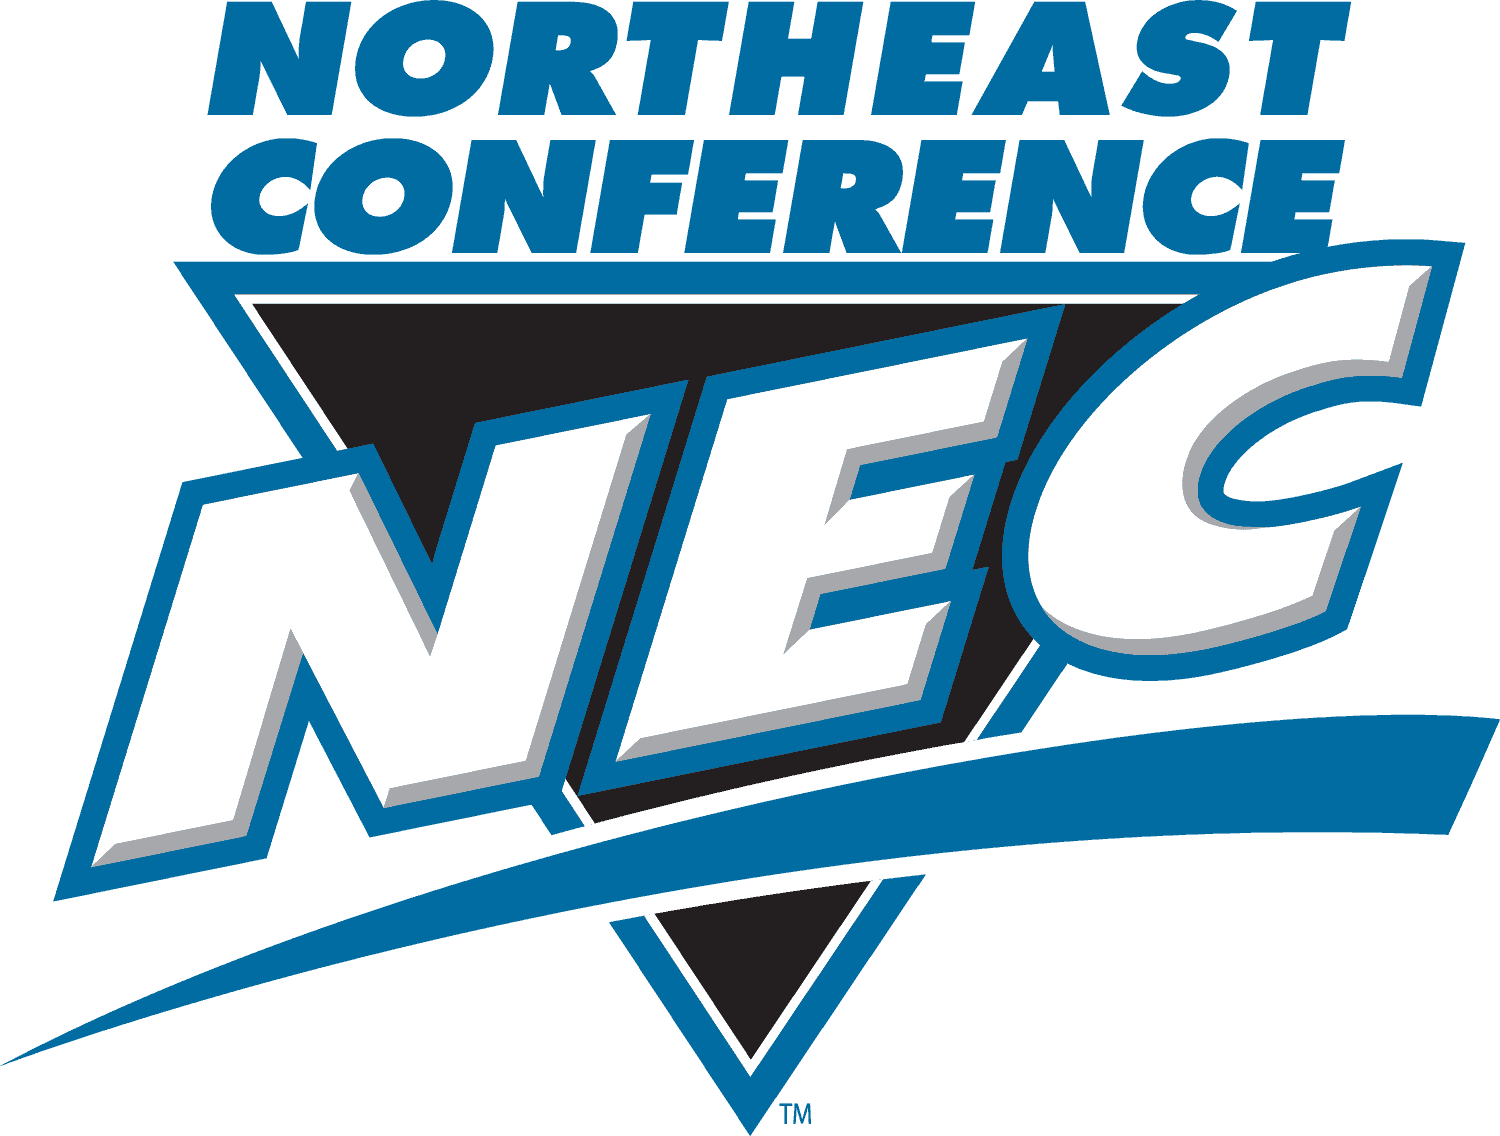 Northeast Conference Logo (NEC) png